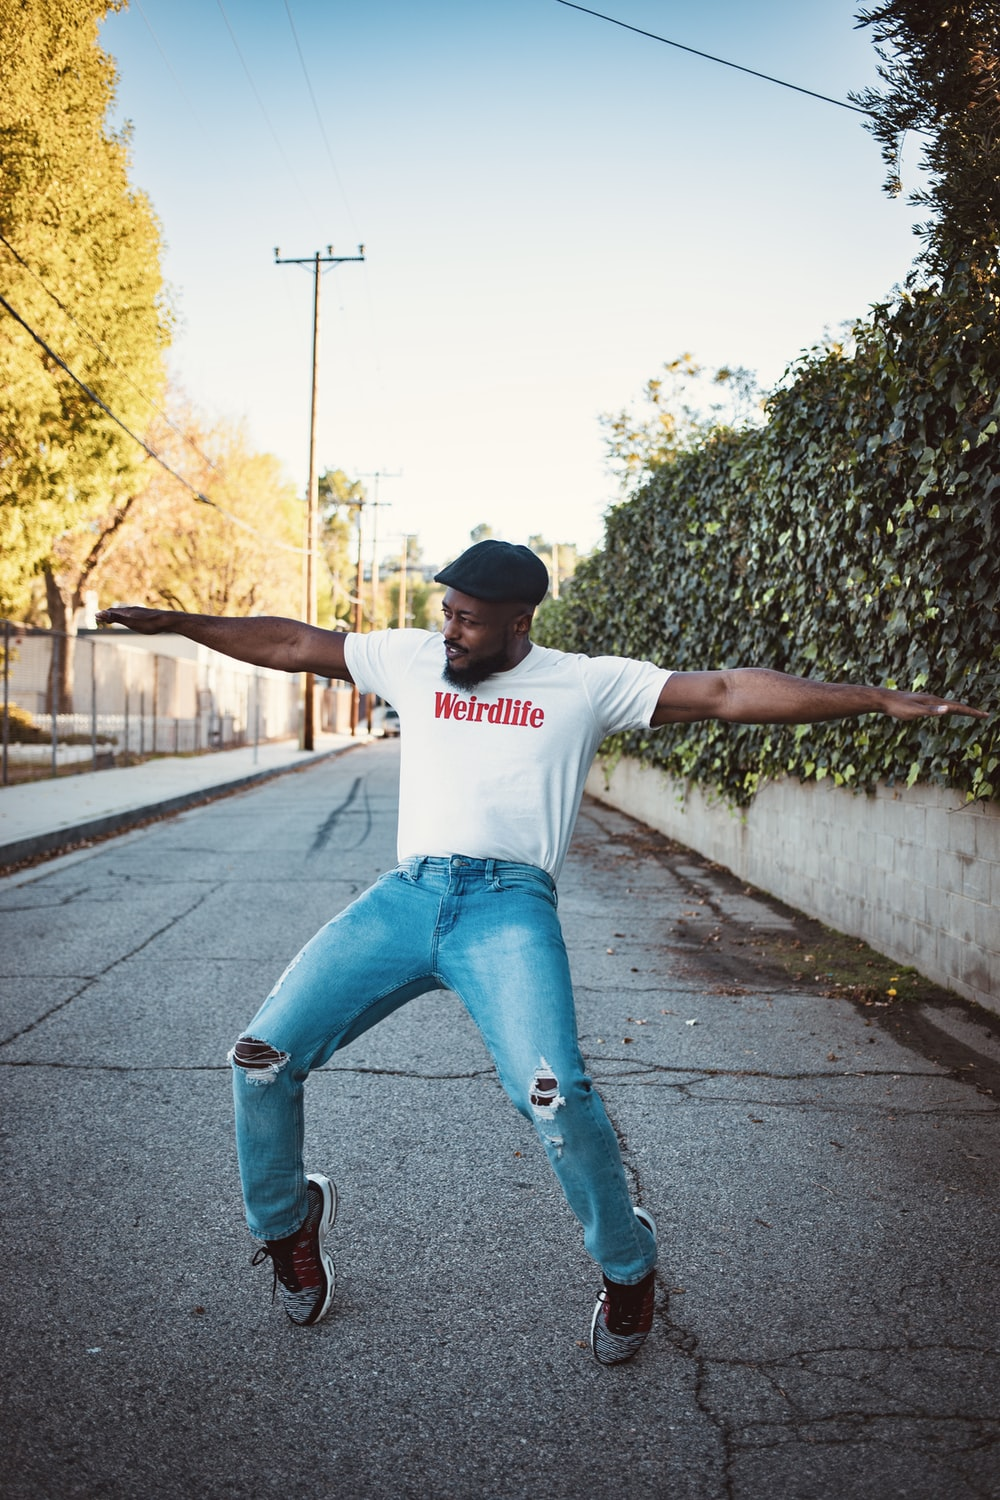 woman in white crew neck t-shirt and blue denim jeans jumping on gray concrete road